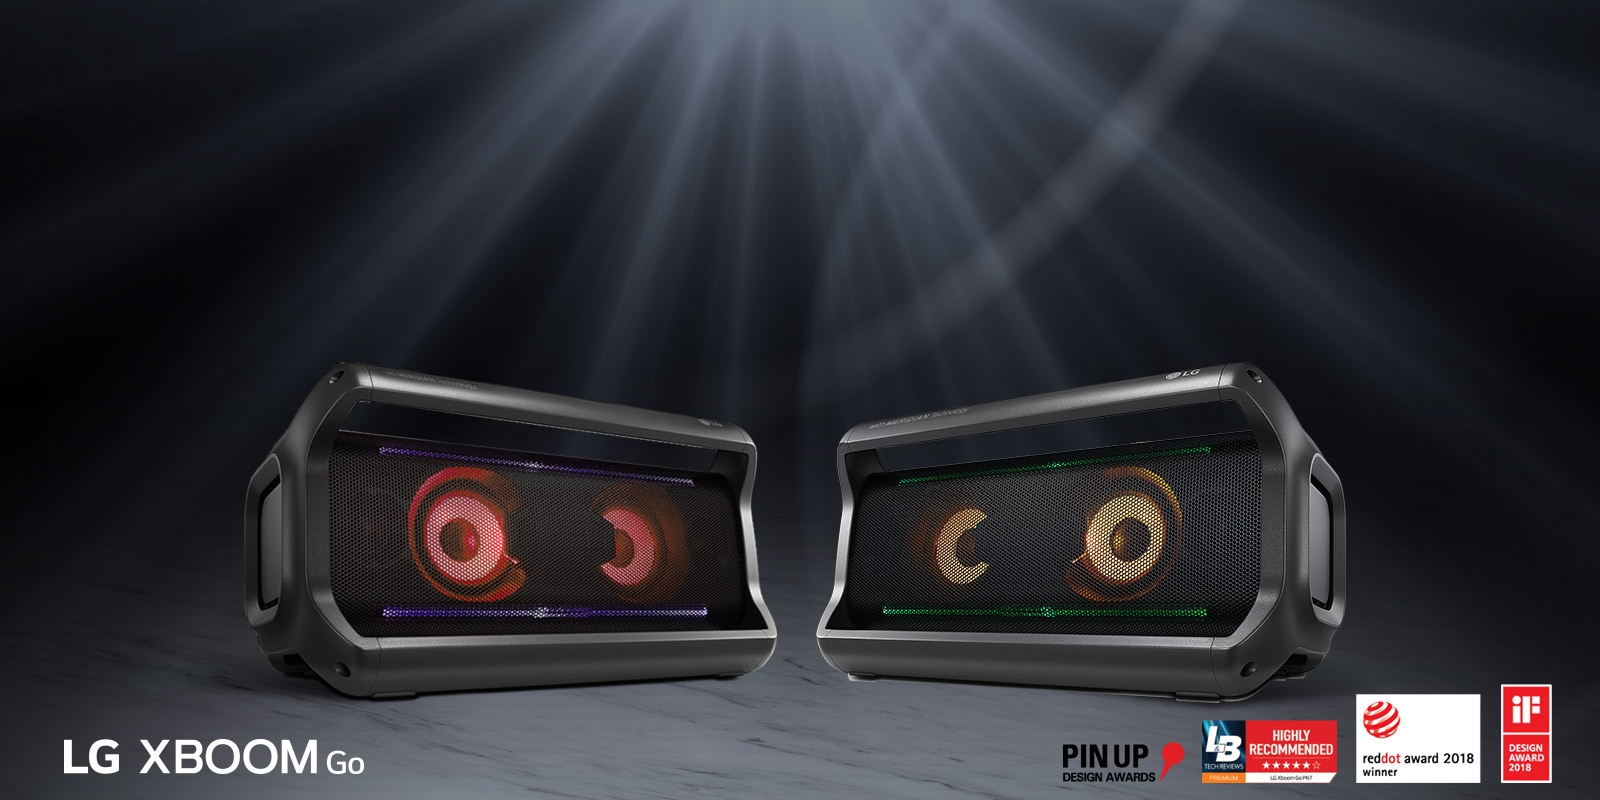 LG Speaker Systems - Surround Sound Sytems & Home Theatres